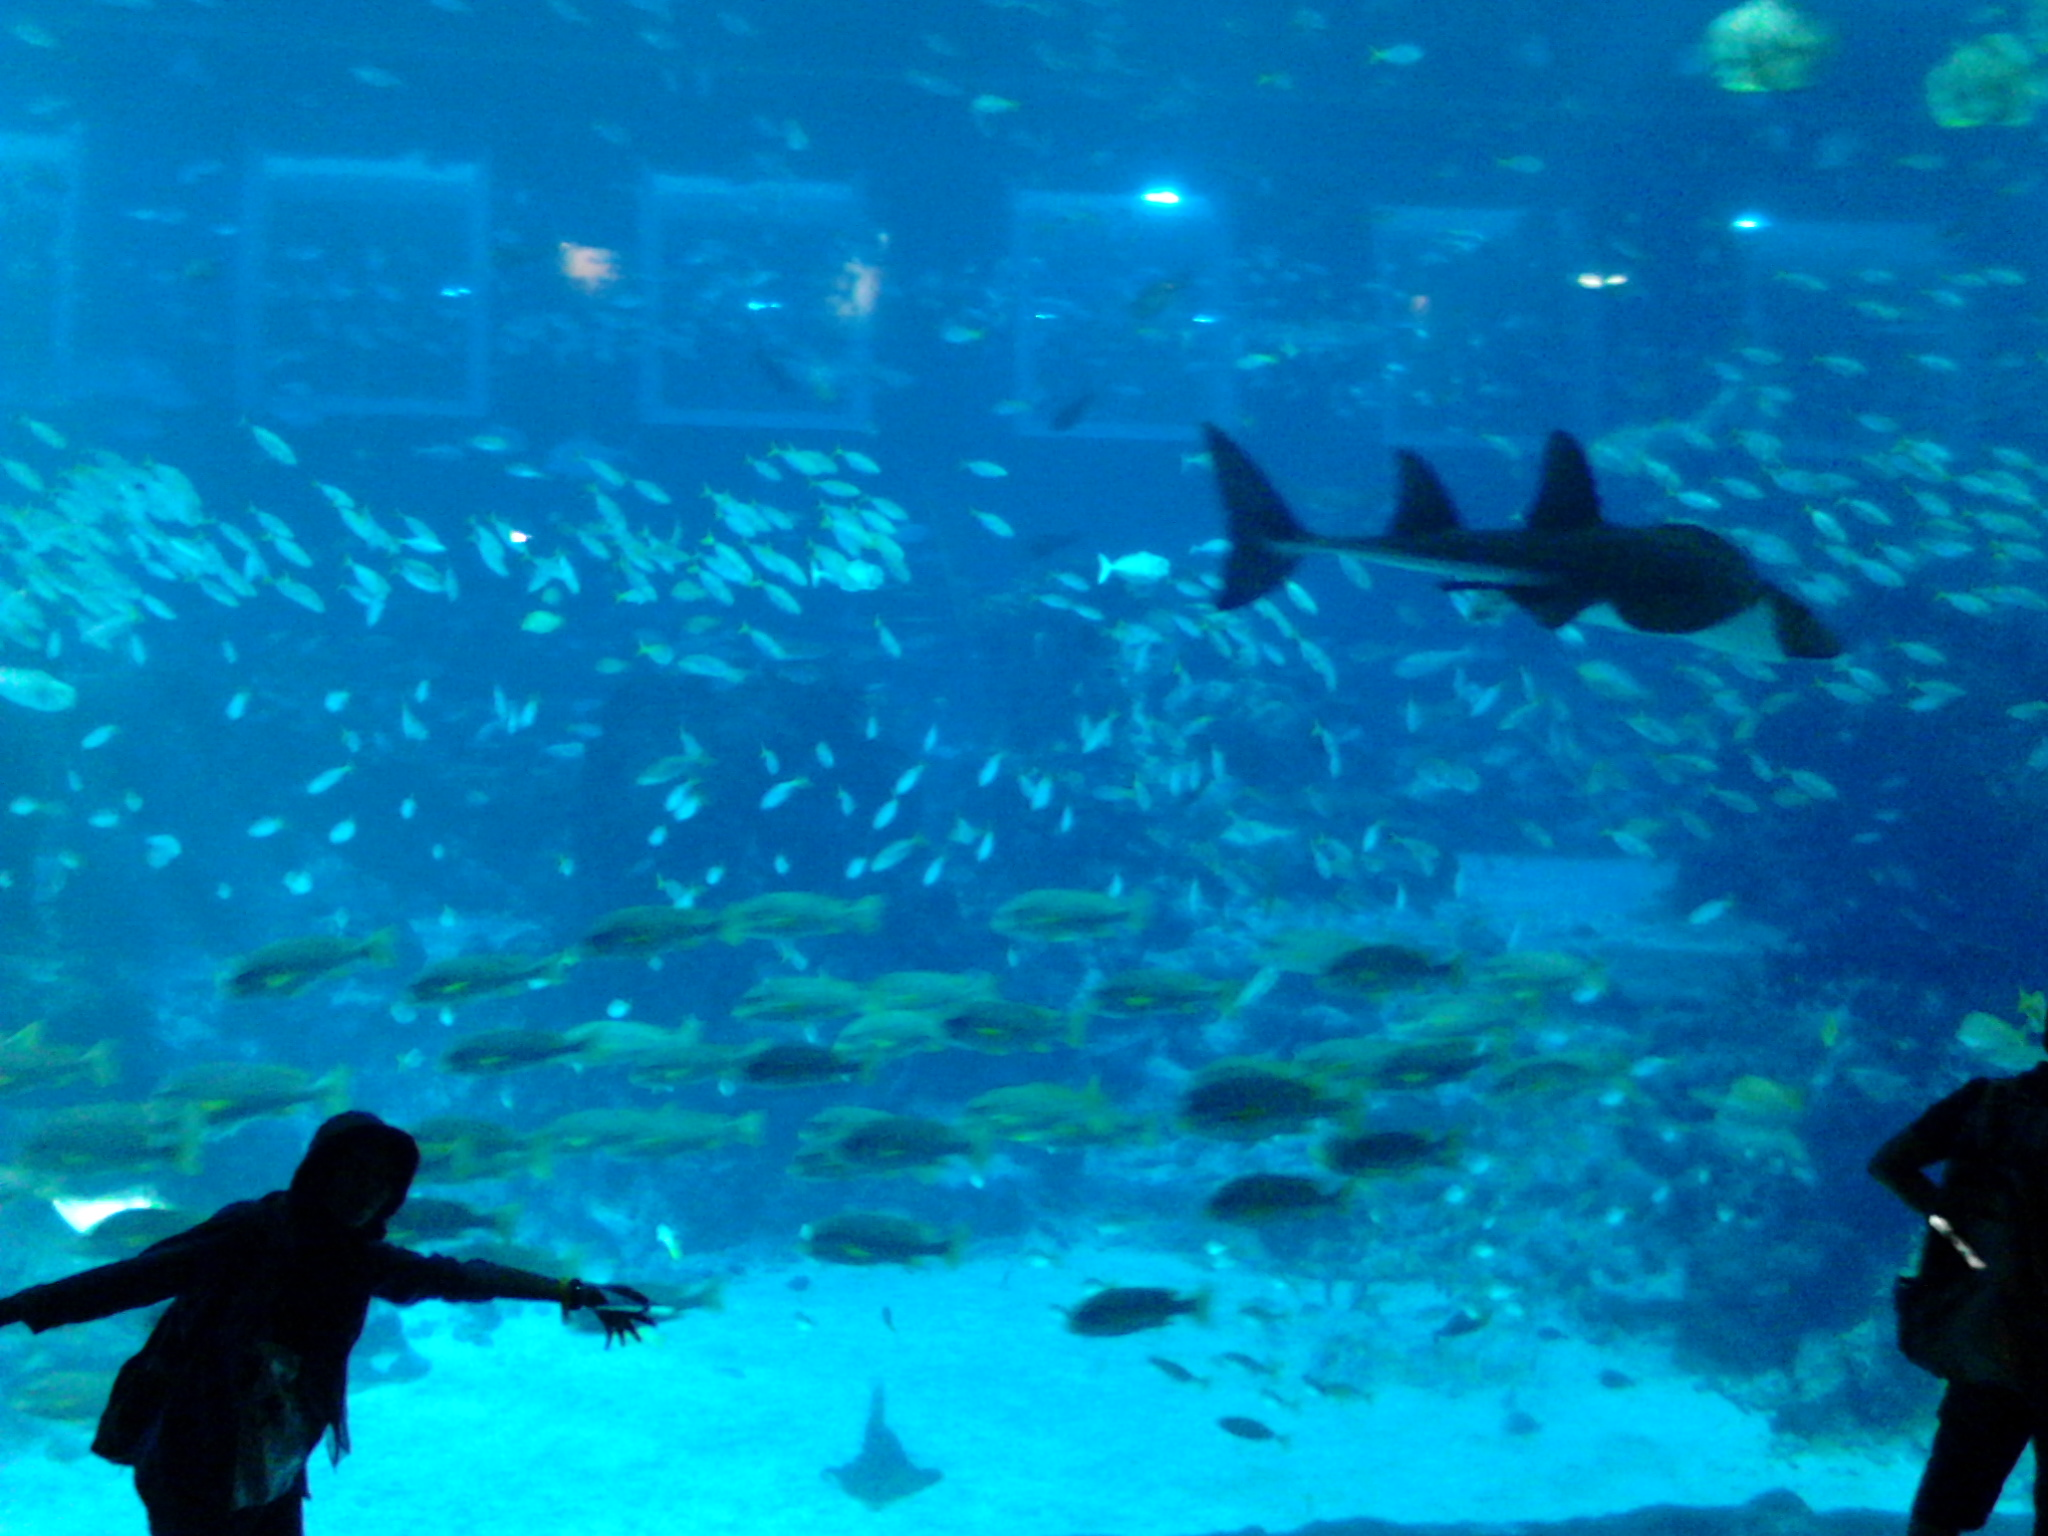 Ocean Gallery - Open Ocean S.E.A Aquarium Singapore